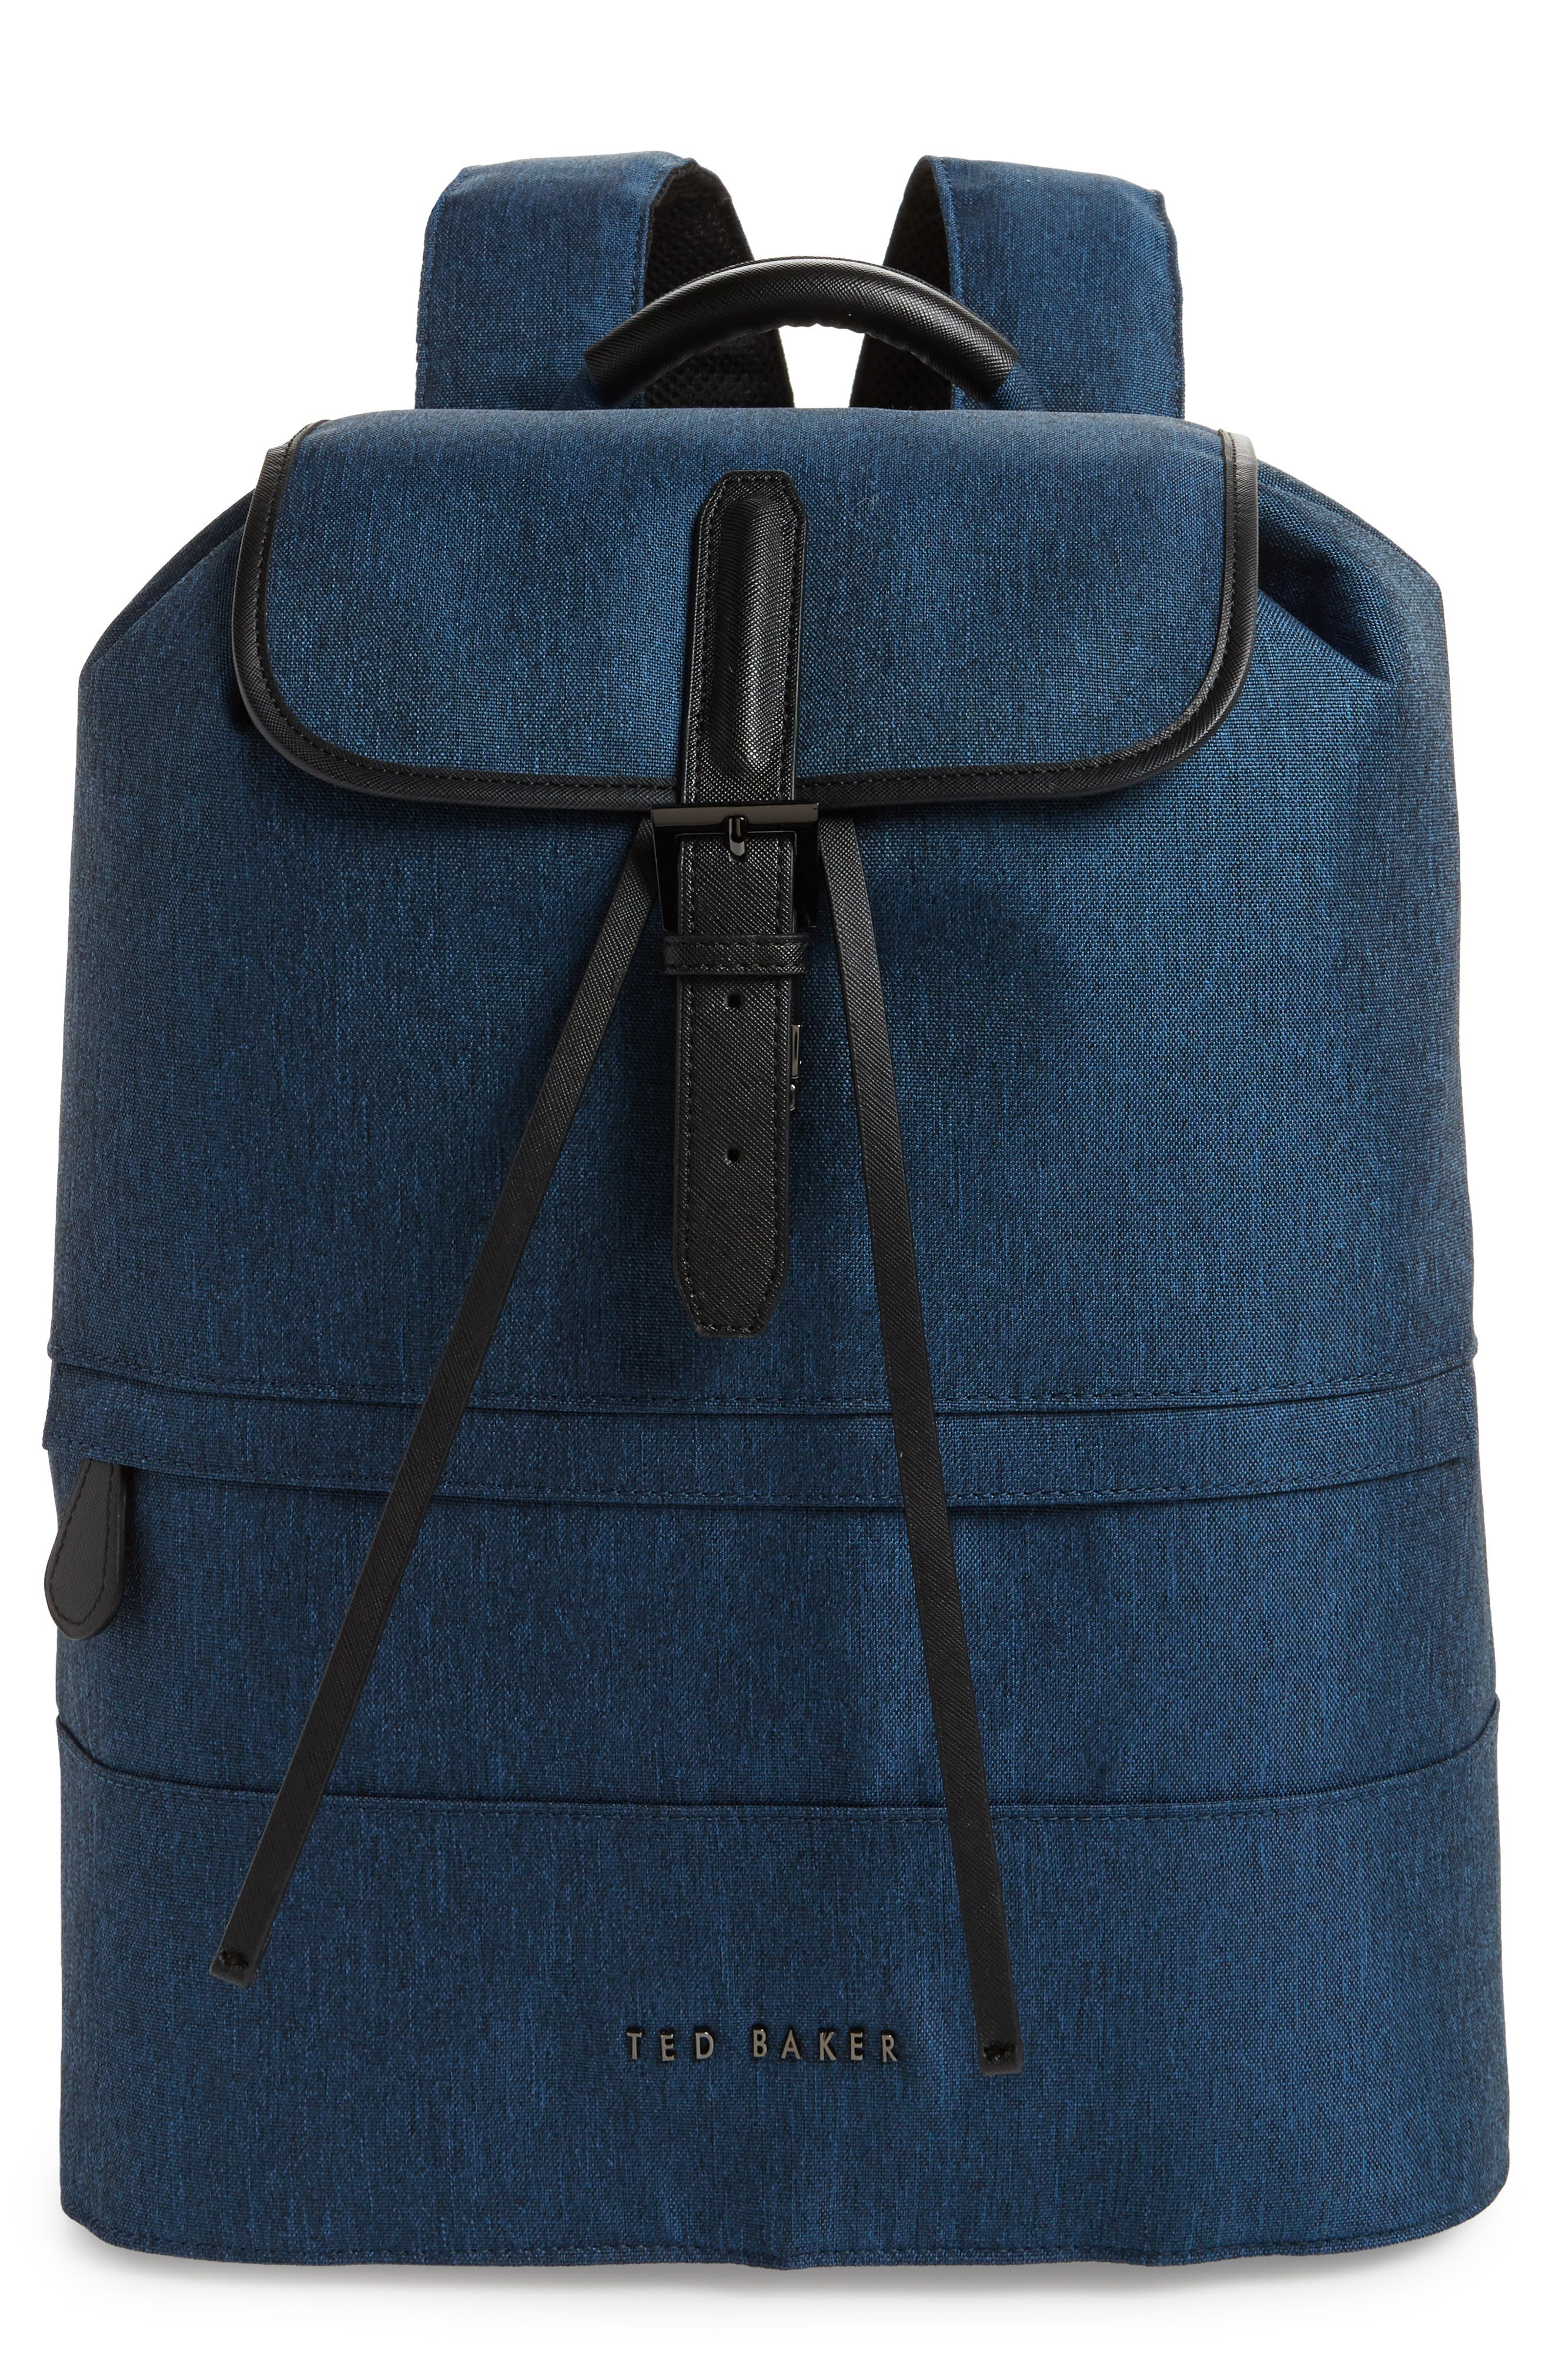 Rayman Backpack,                         Main,                         color, Blue